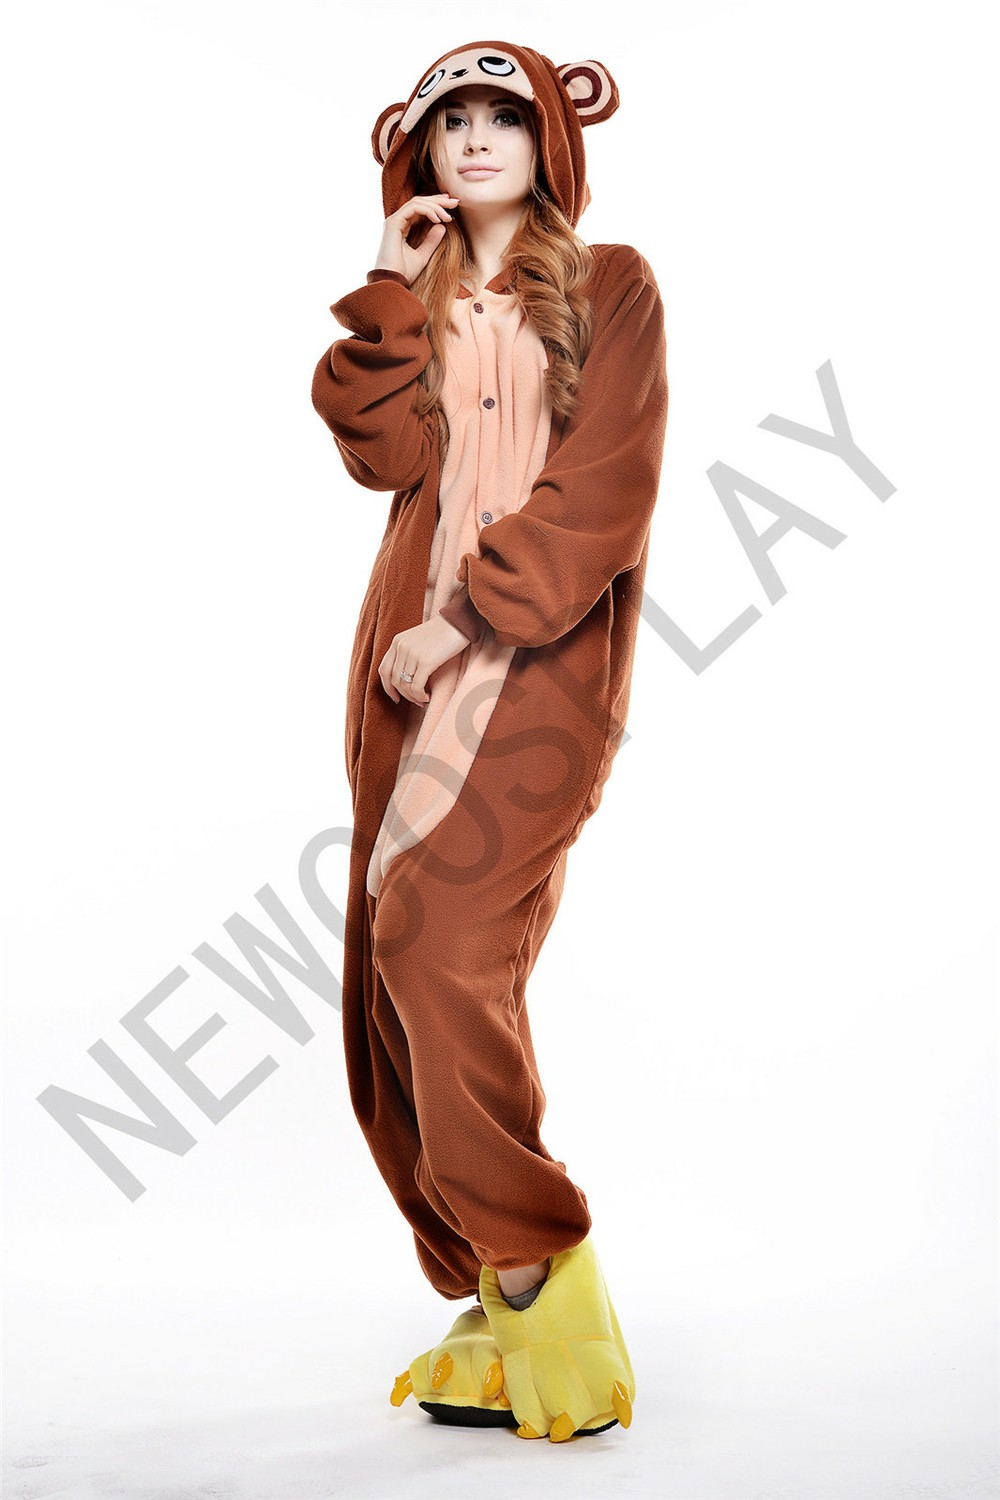 COFFEE MONKEY ONESIE by NEWCOSPLAY ONESIE